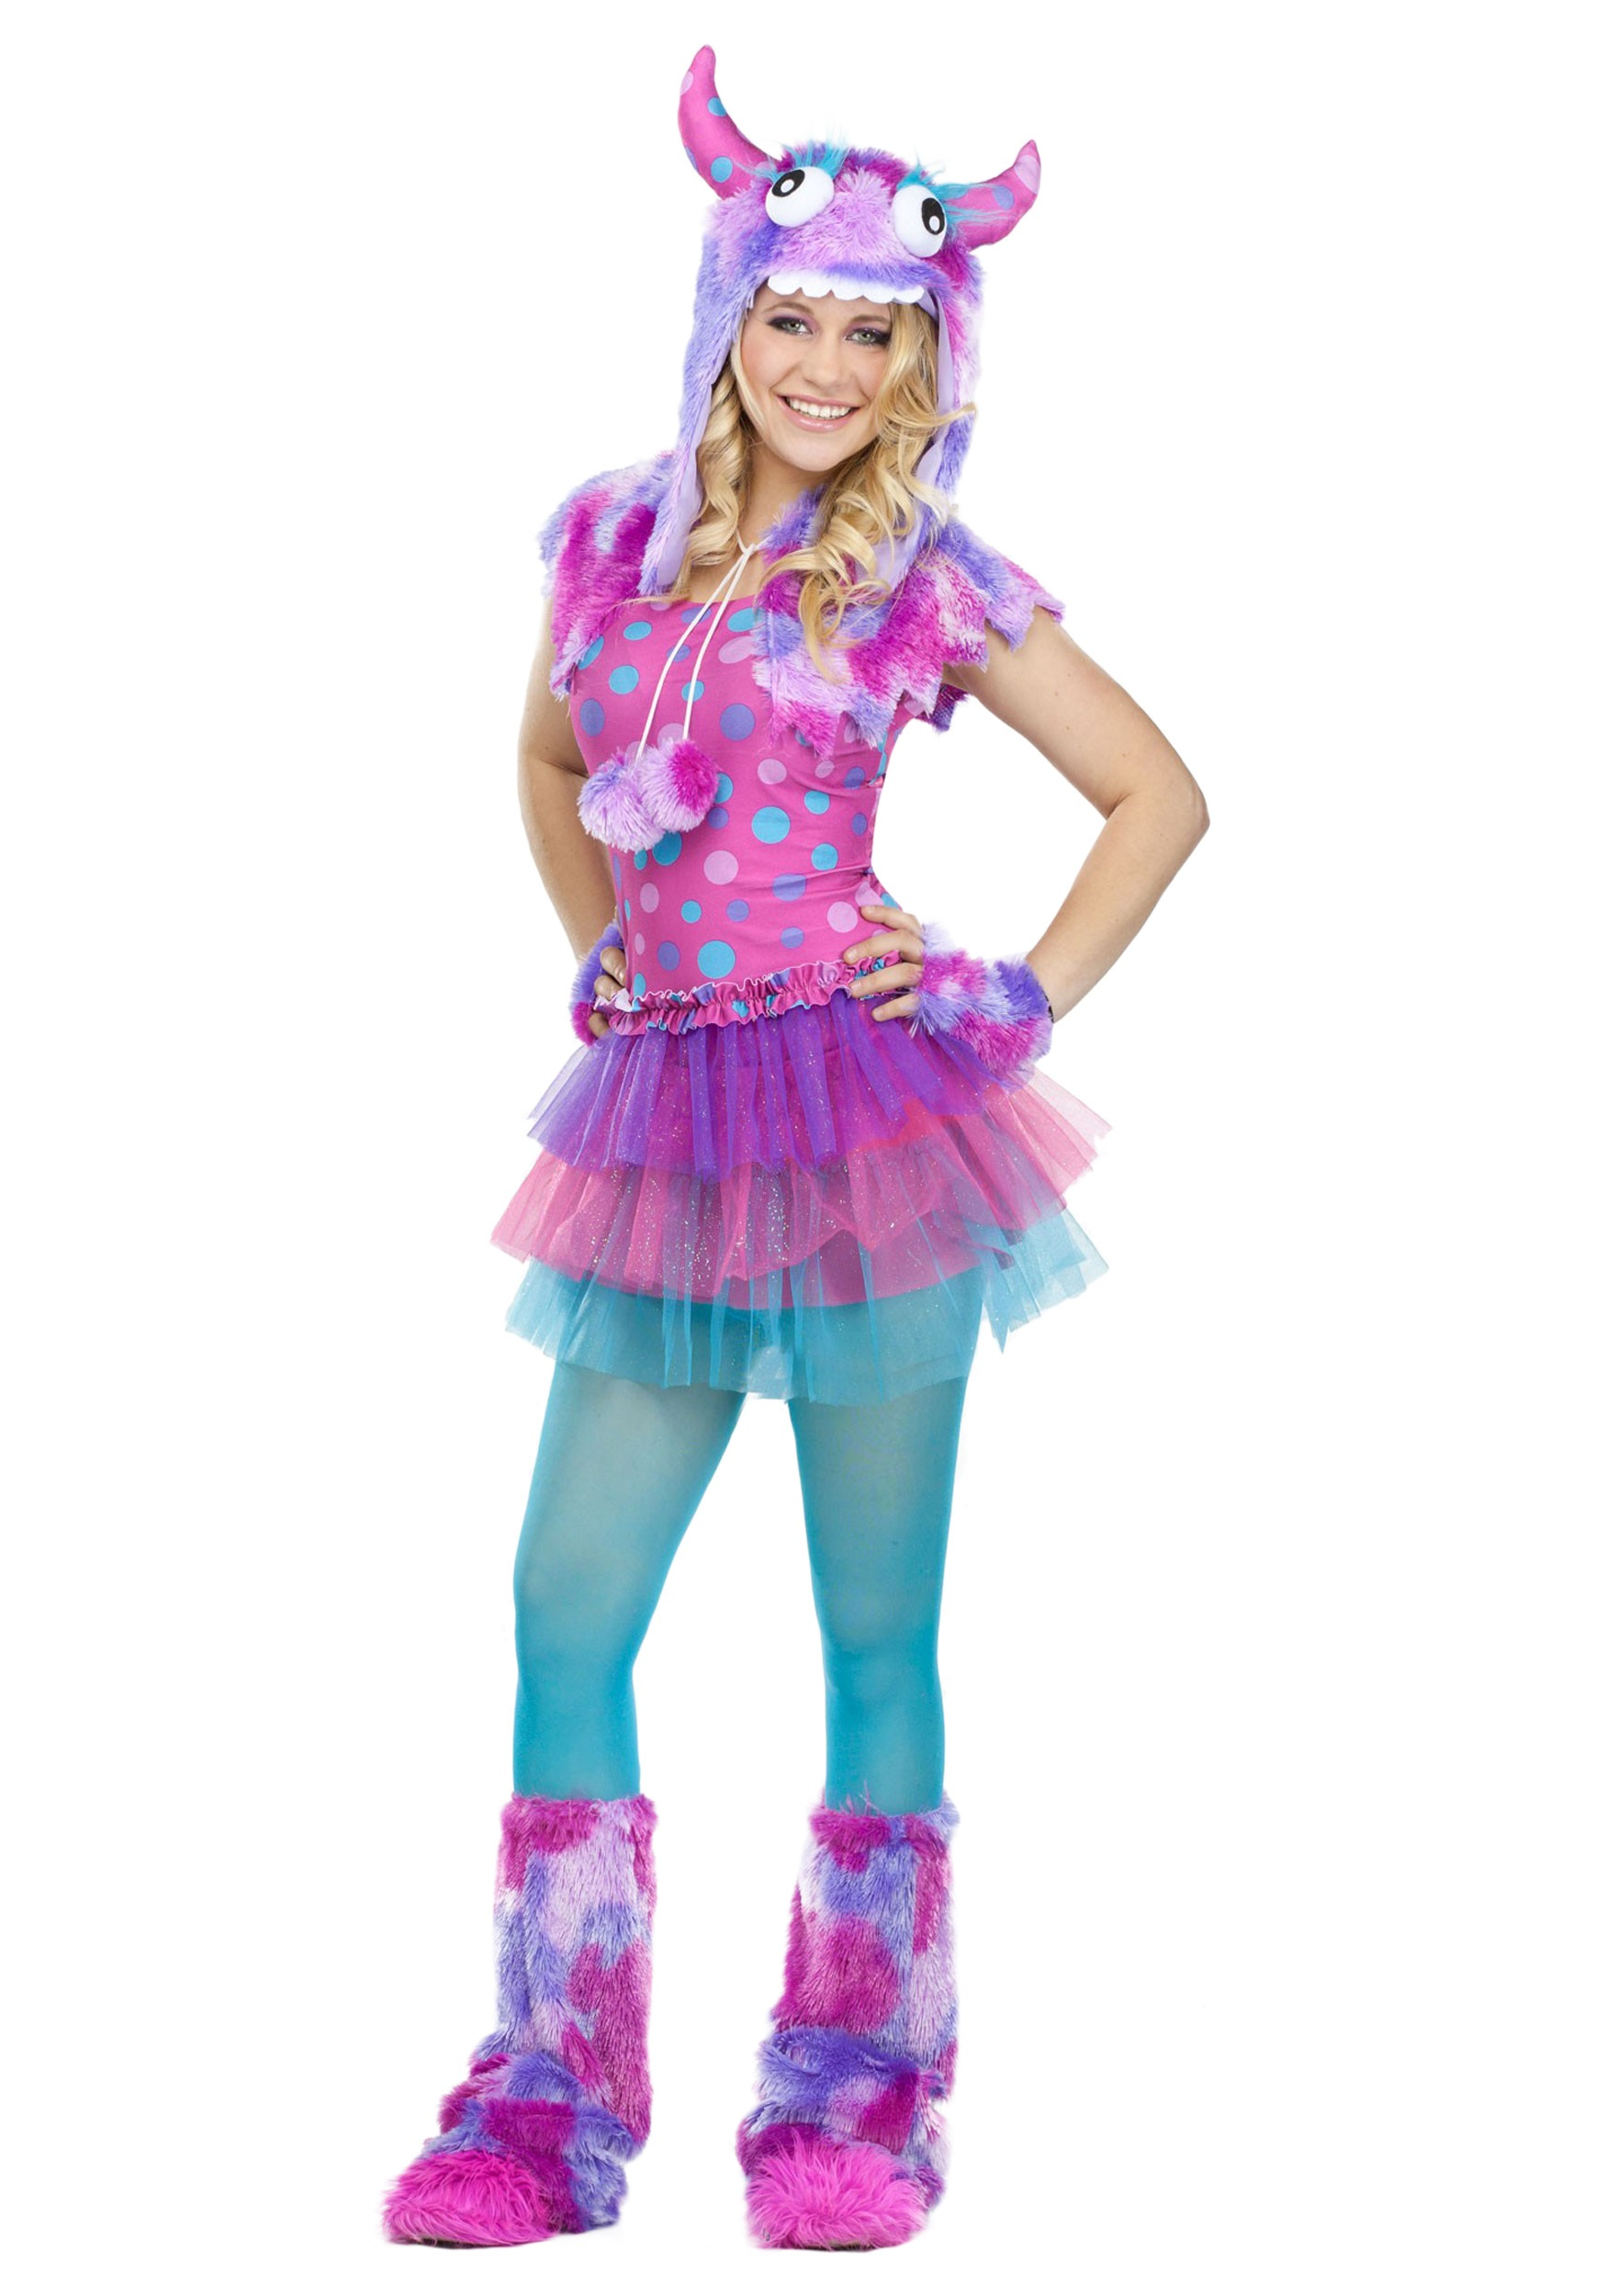 Teen Polka Dot Monster Costume  sc 1 st  Halloween Costumes & Teen Polka Dot Monster Costume - Halloween Costumes